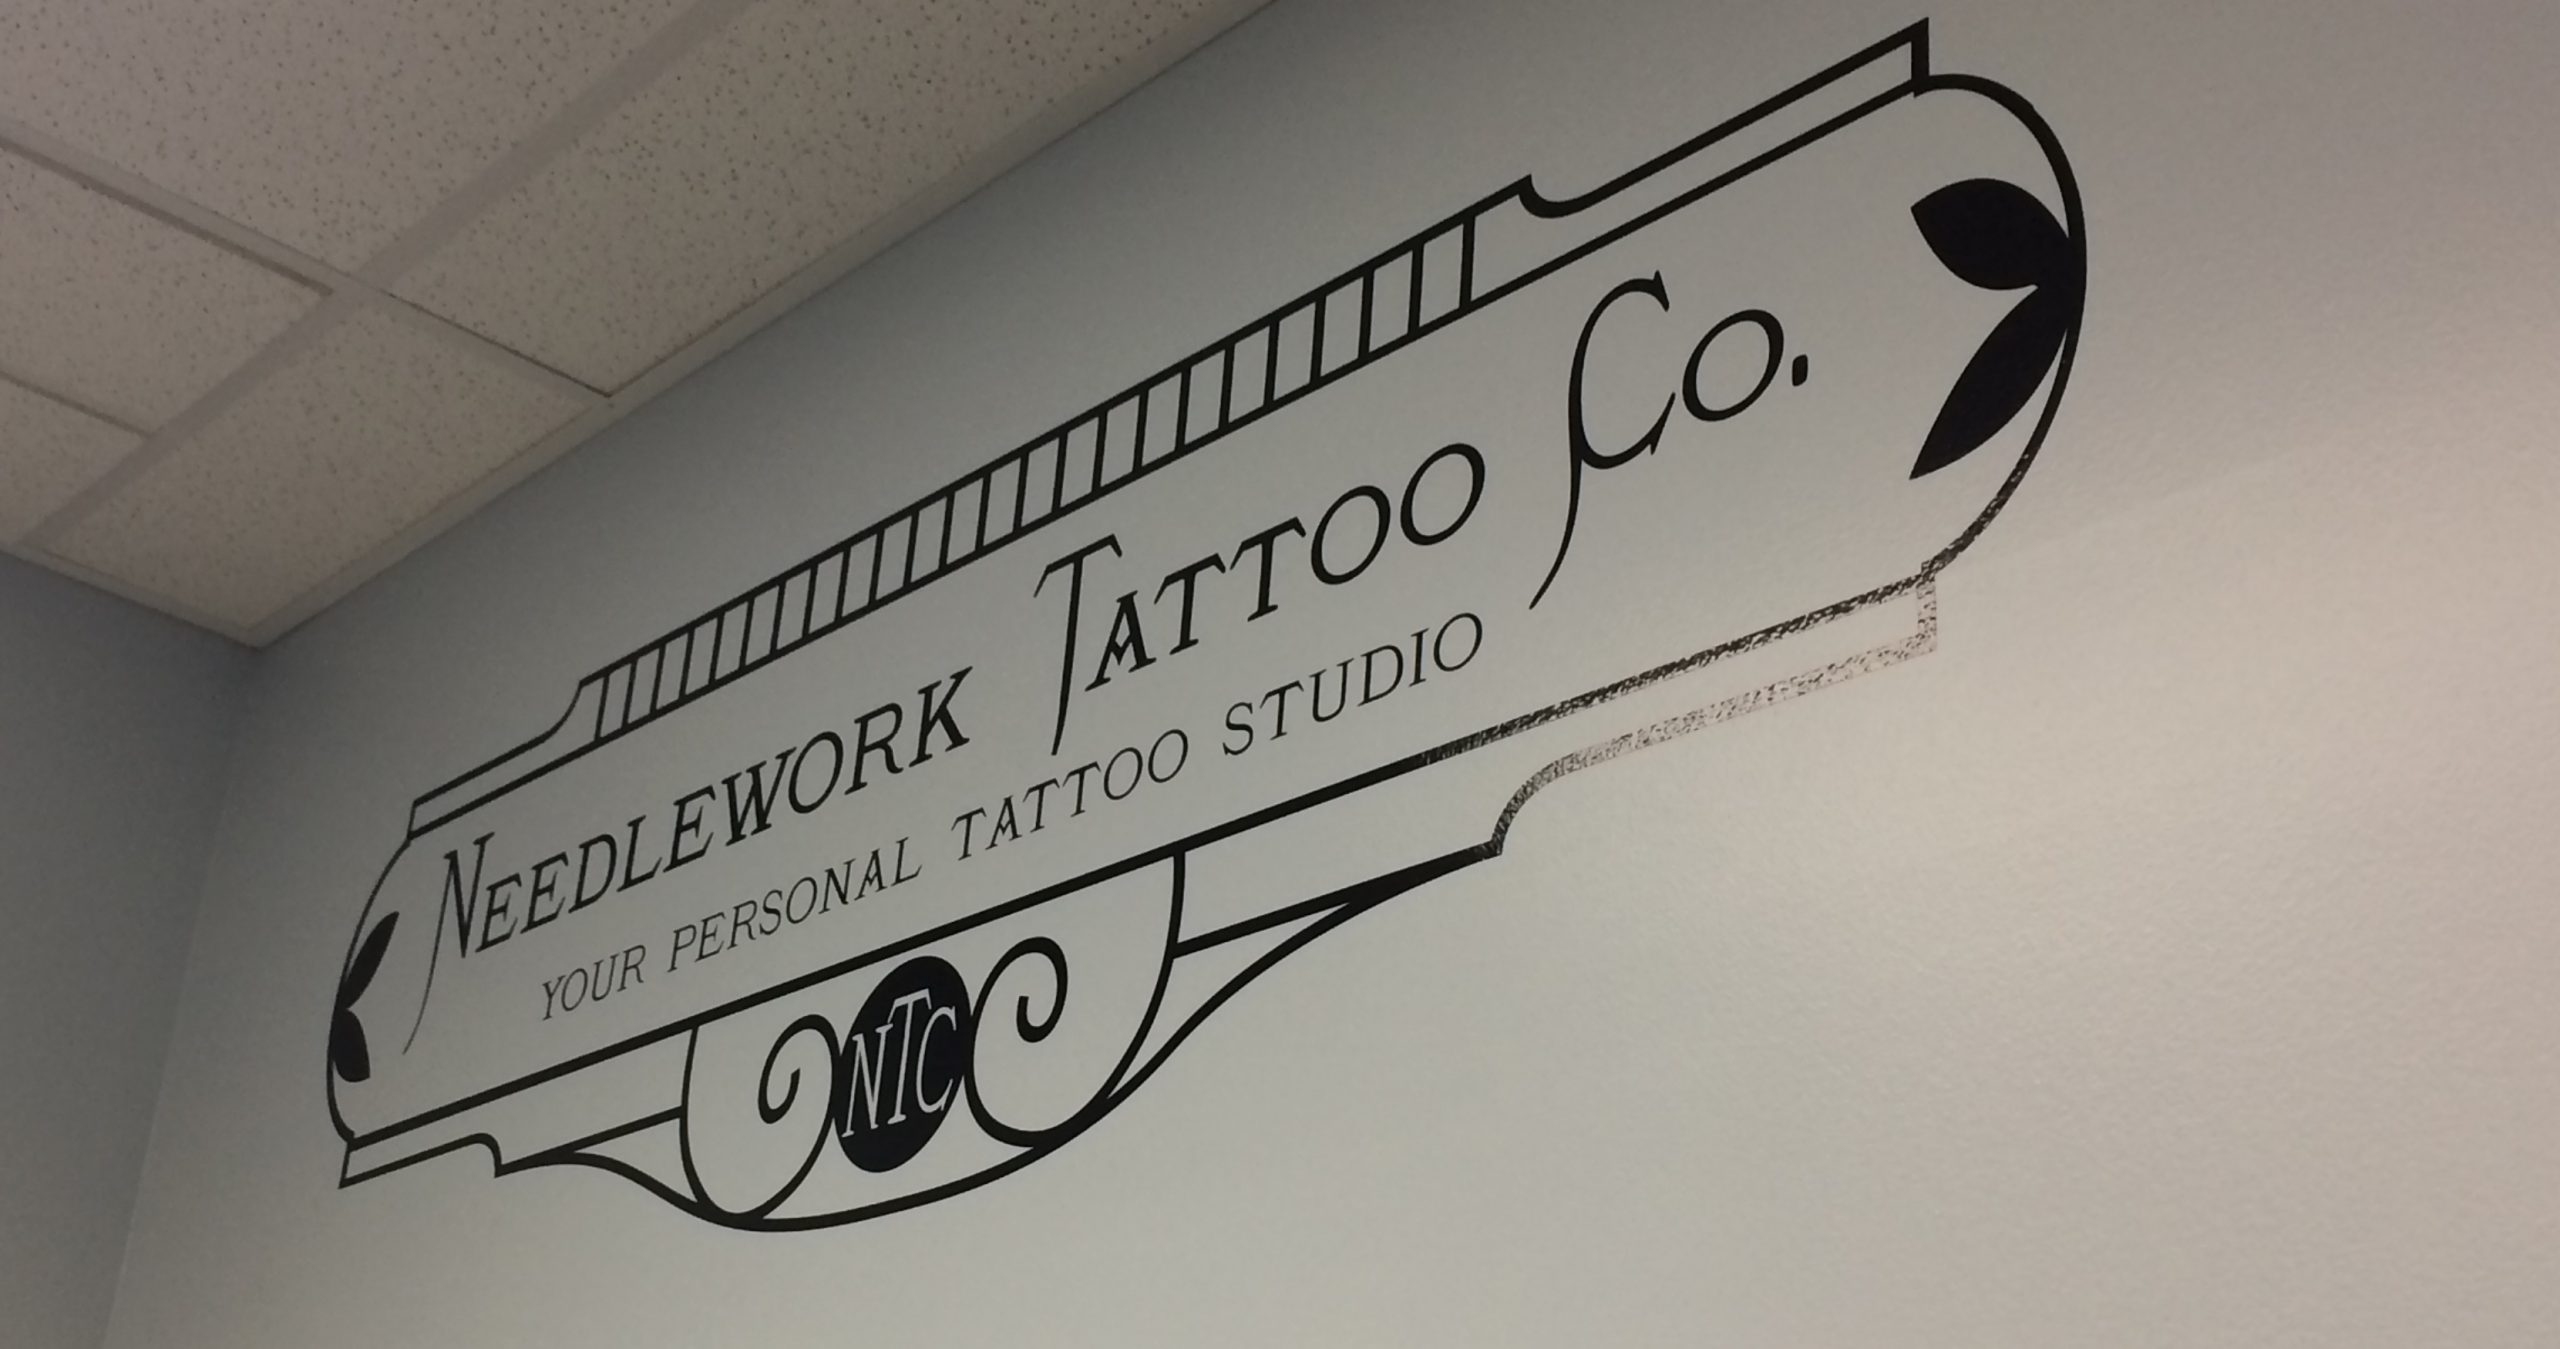 Needlework Tattoo - Wall Graphics - 03